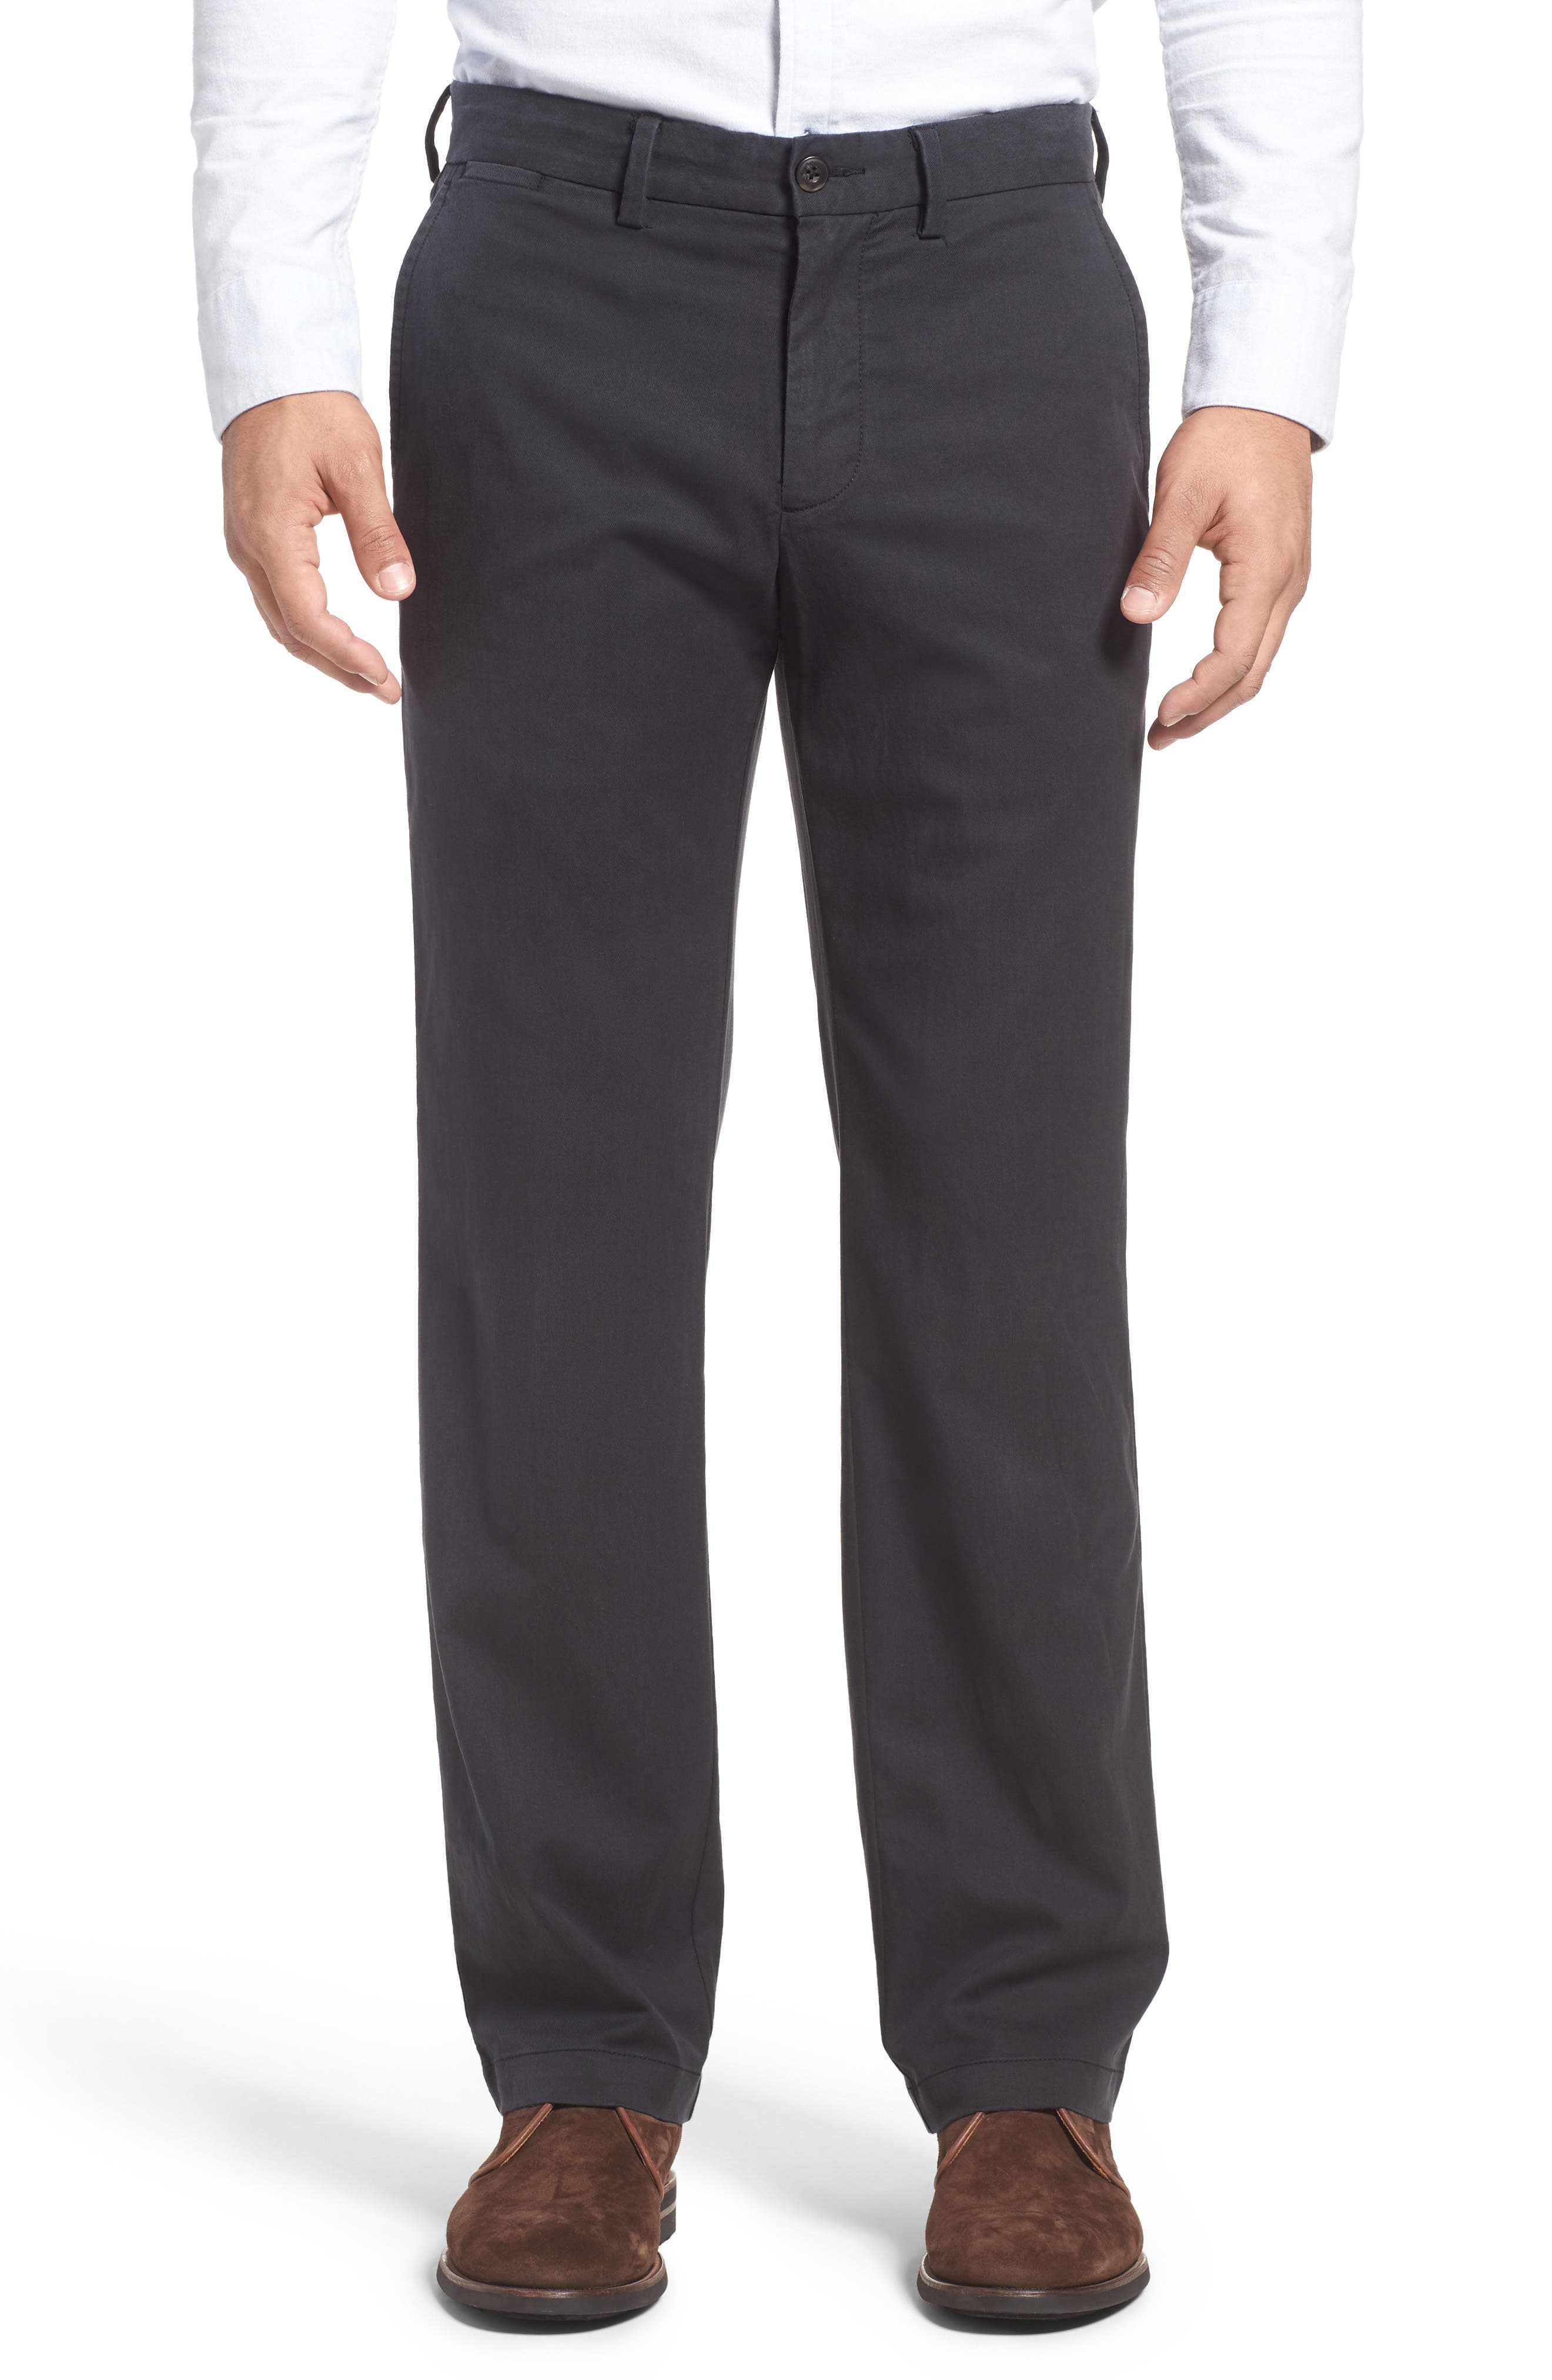 Offshore Flat Front Pants,                             Main thumbnail 1, color,                             Black